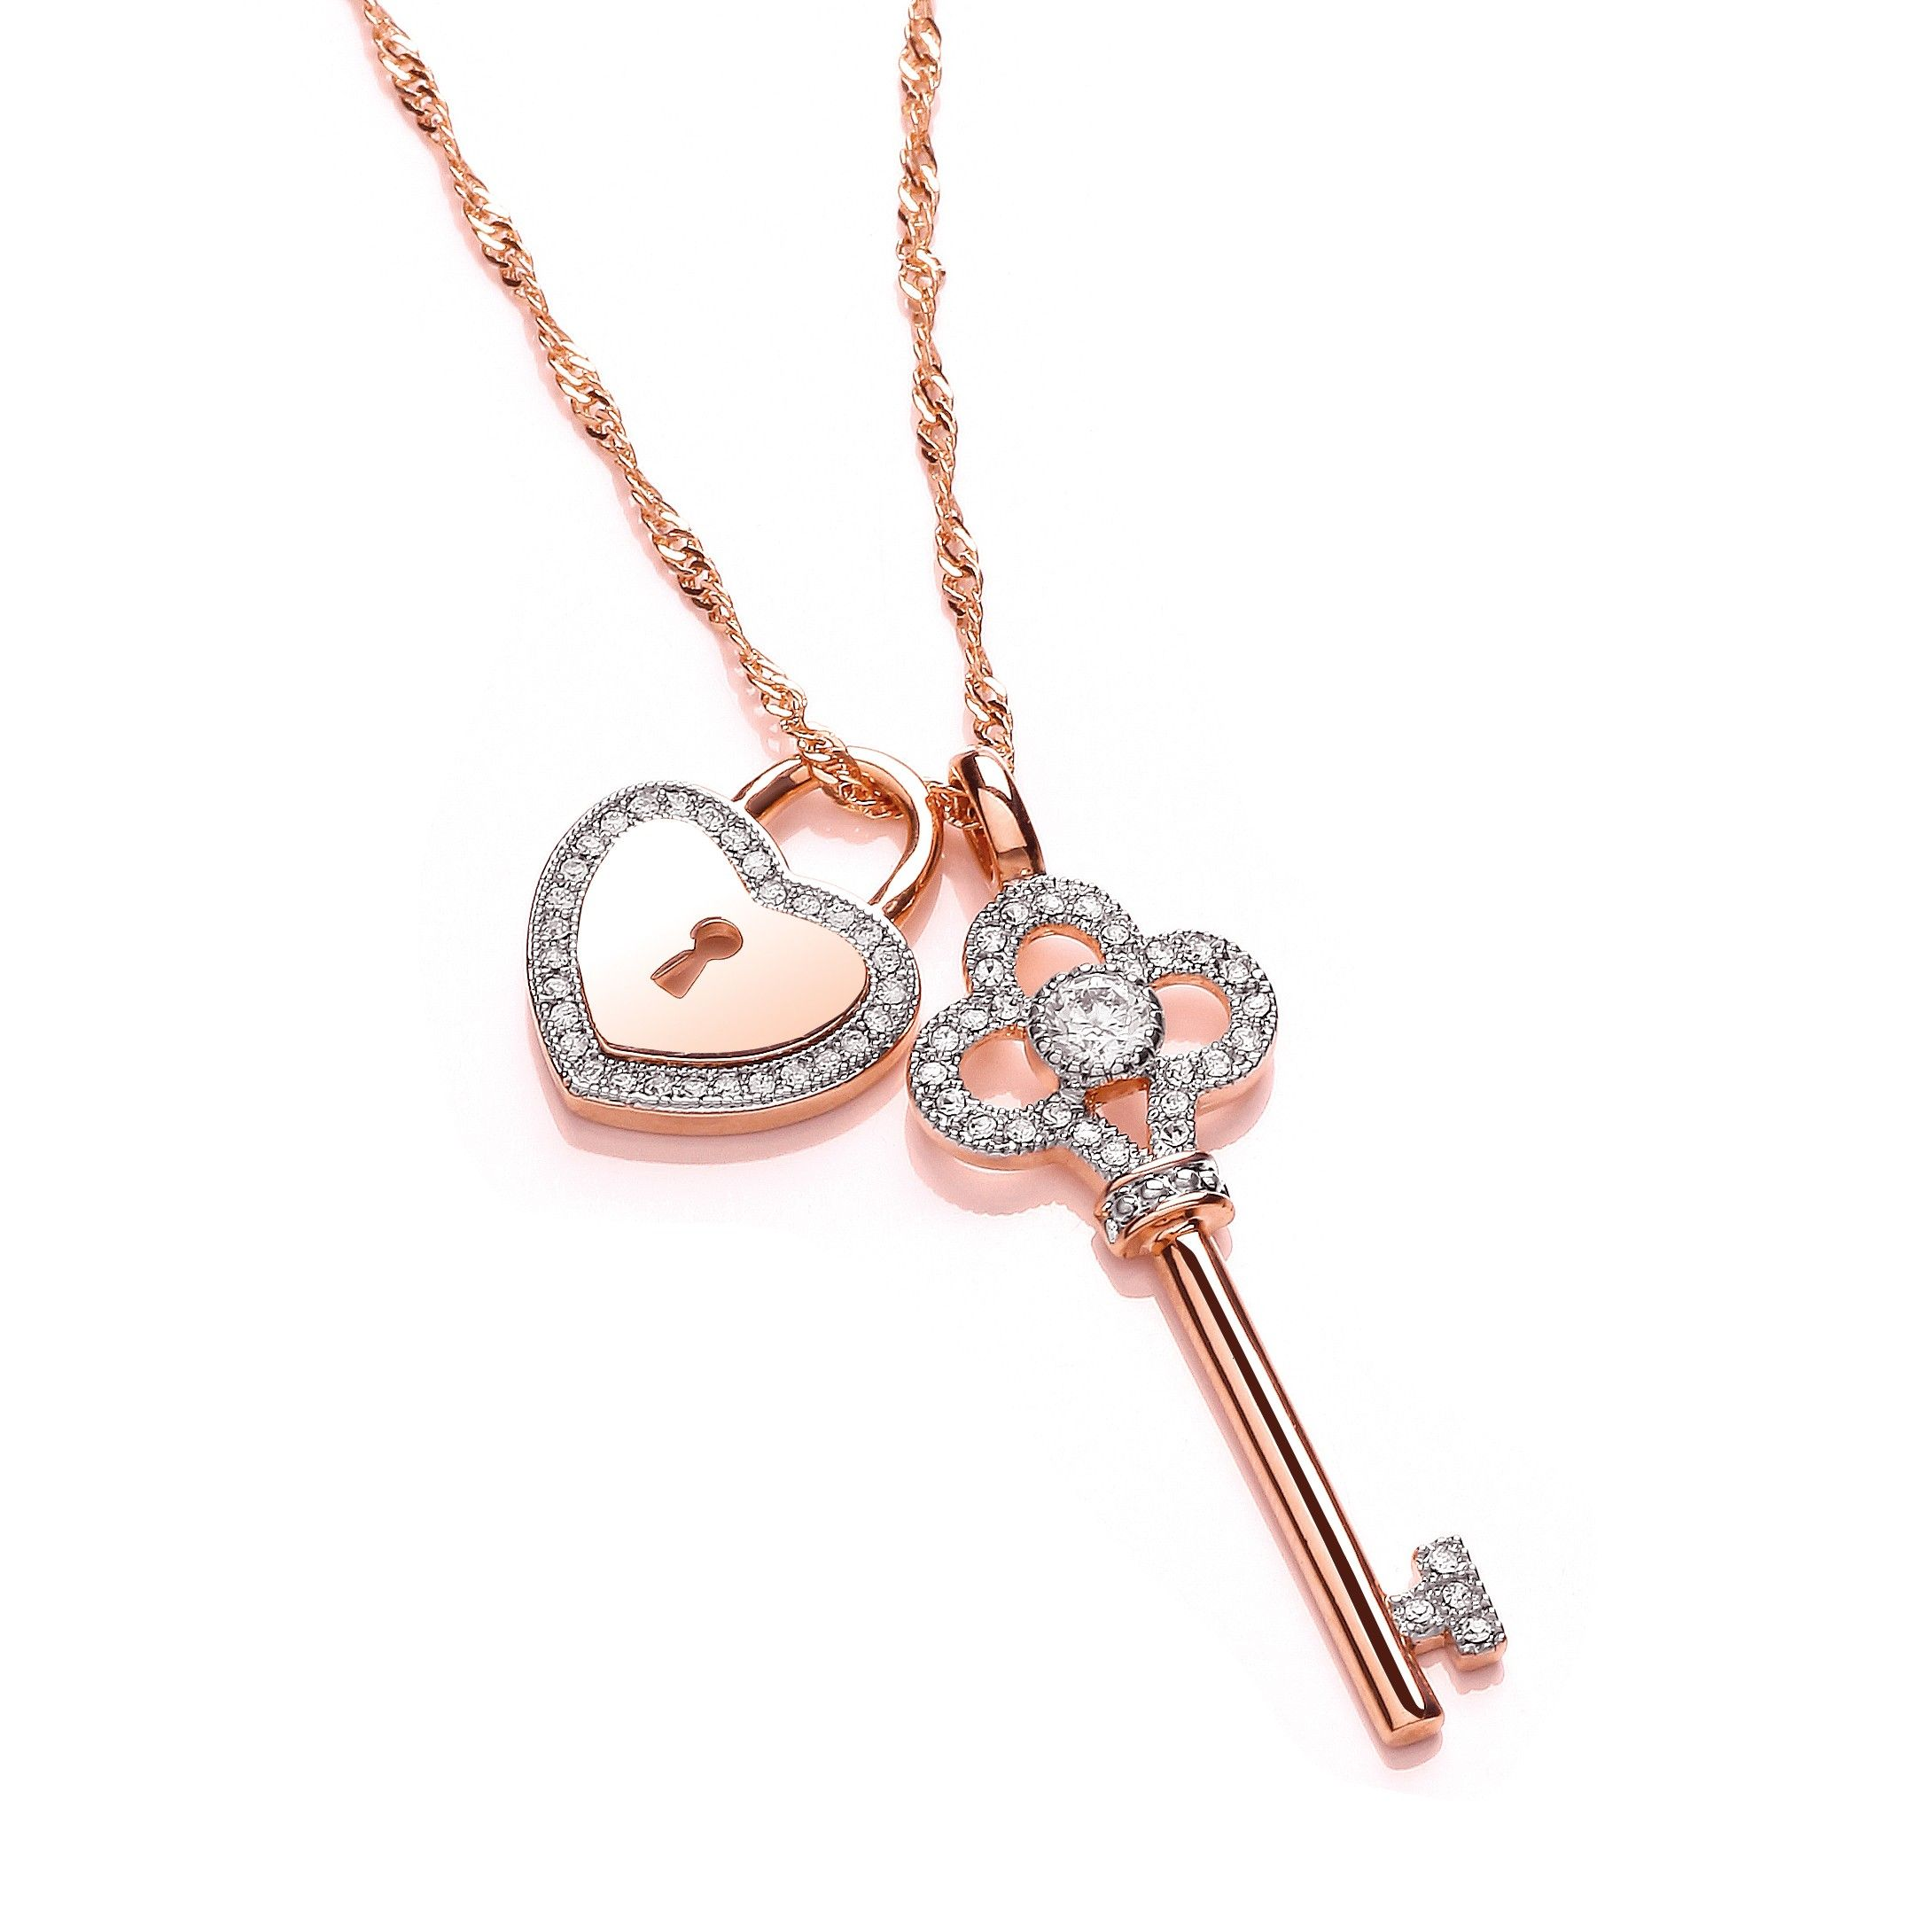 ladies arrivals necklace lock designer new tone kors pendant michael signature gold shop